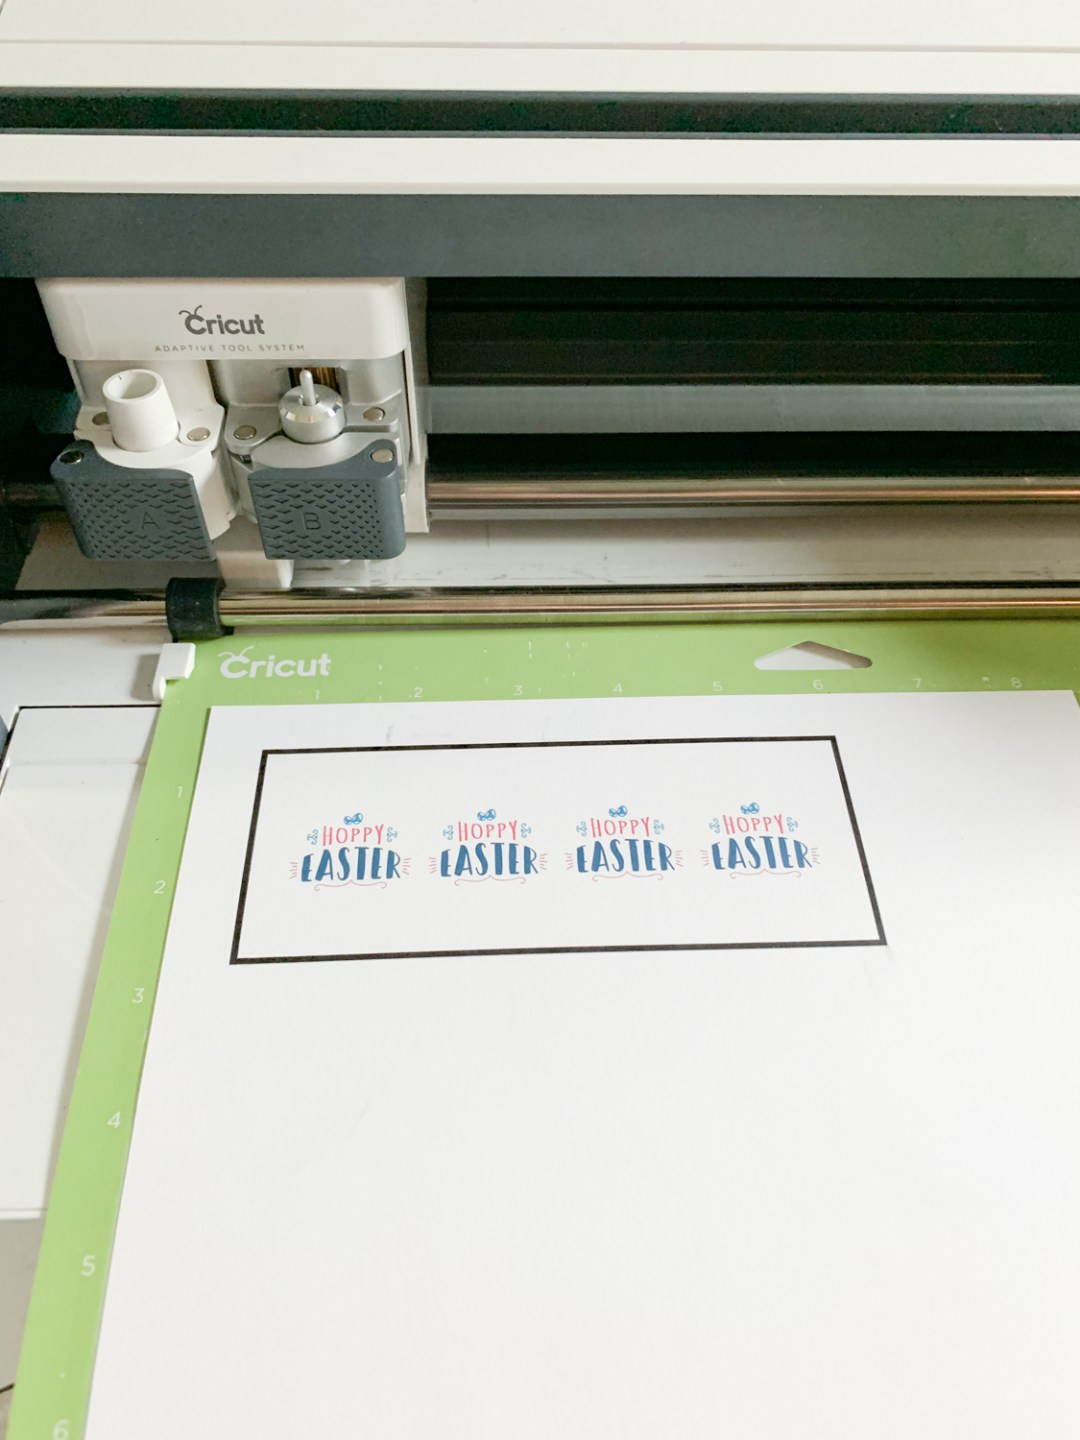 Cricut Maker Cutting Mat